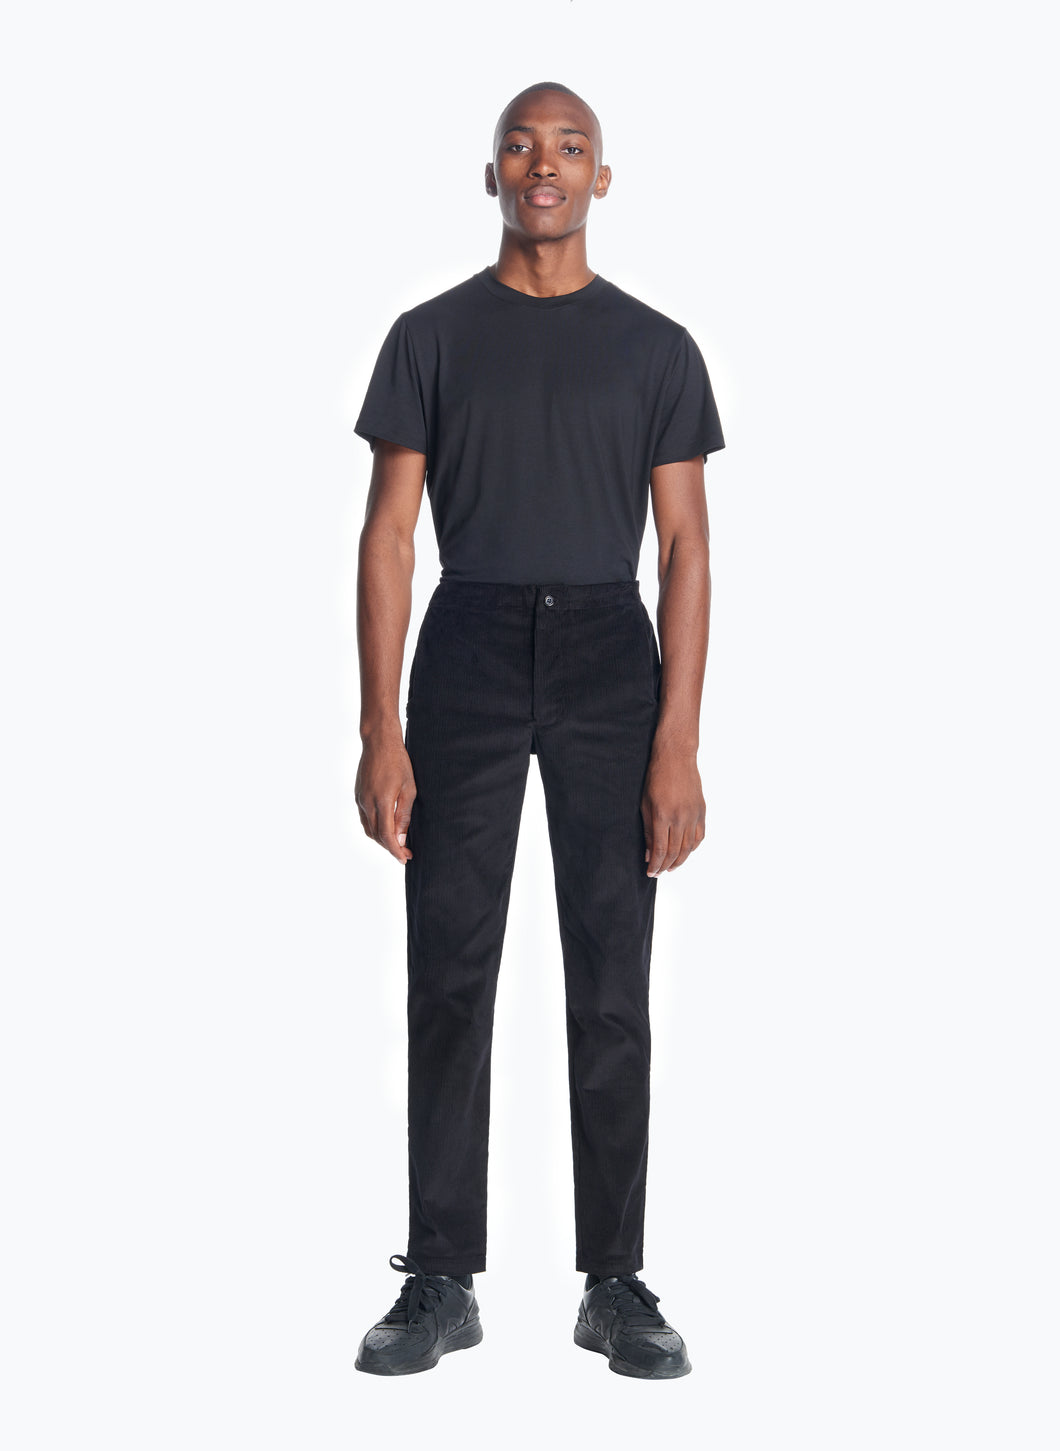 Pants with Notched Pockets in Black Corduroy